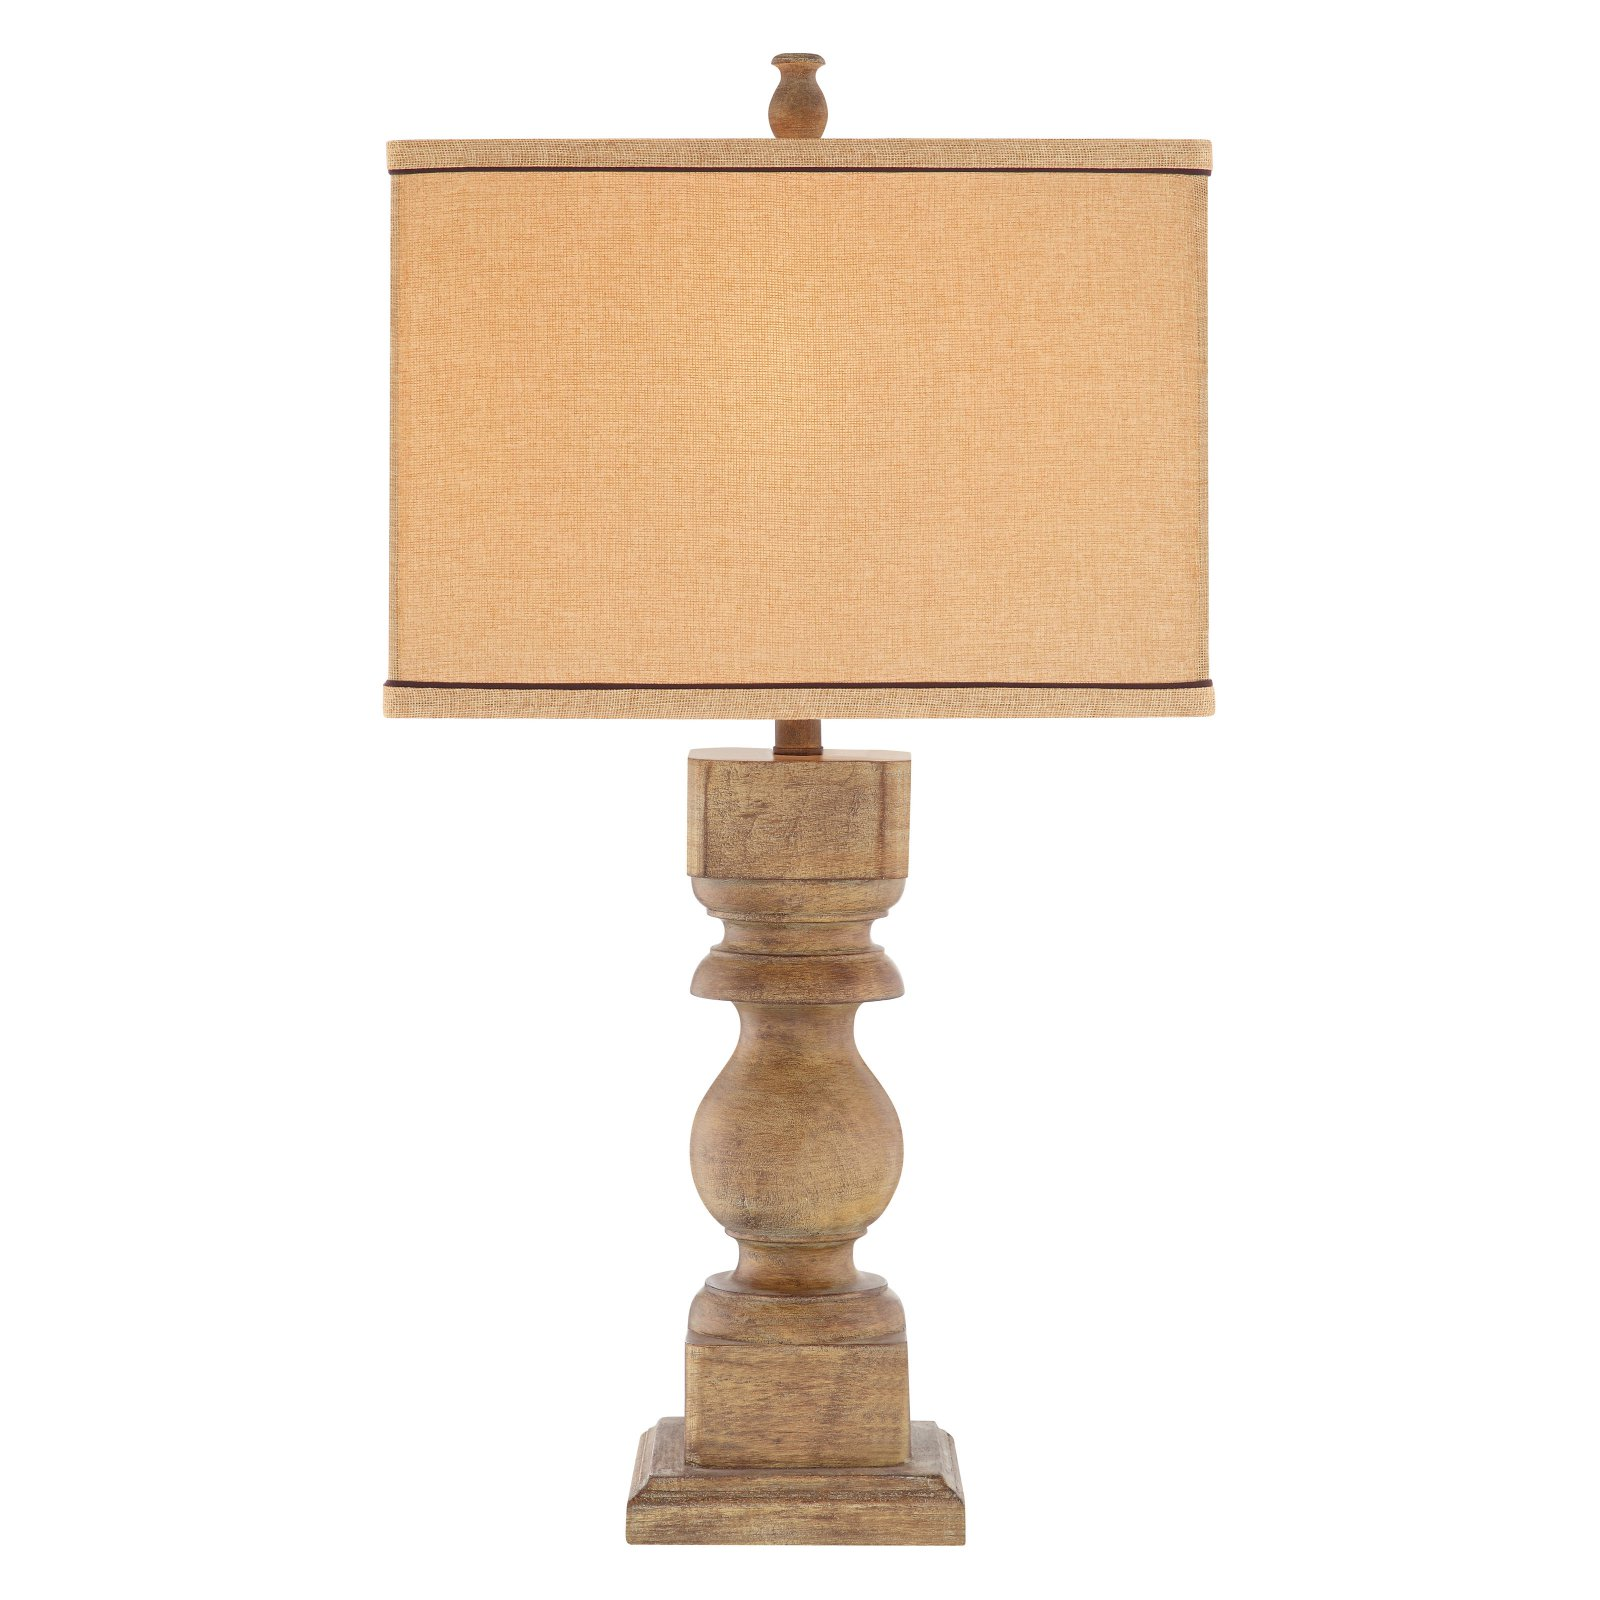 3 way switch table lamps catalina lighting amelia 3way switch table lamp walmartcom